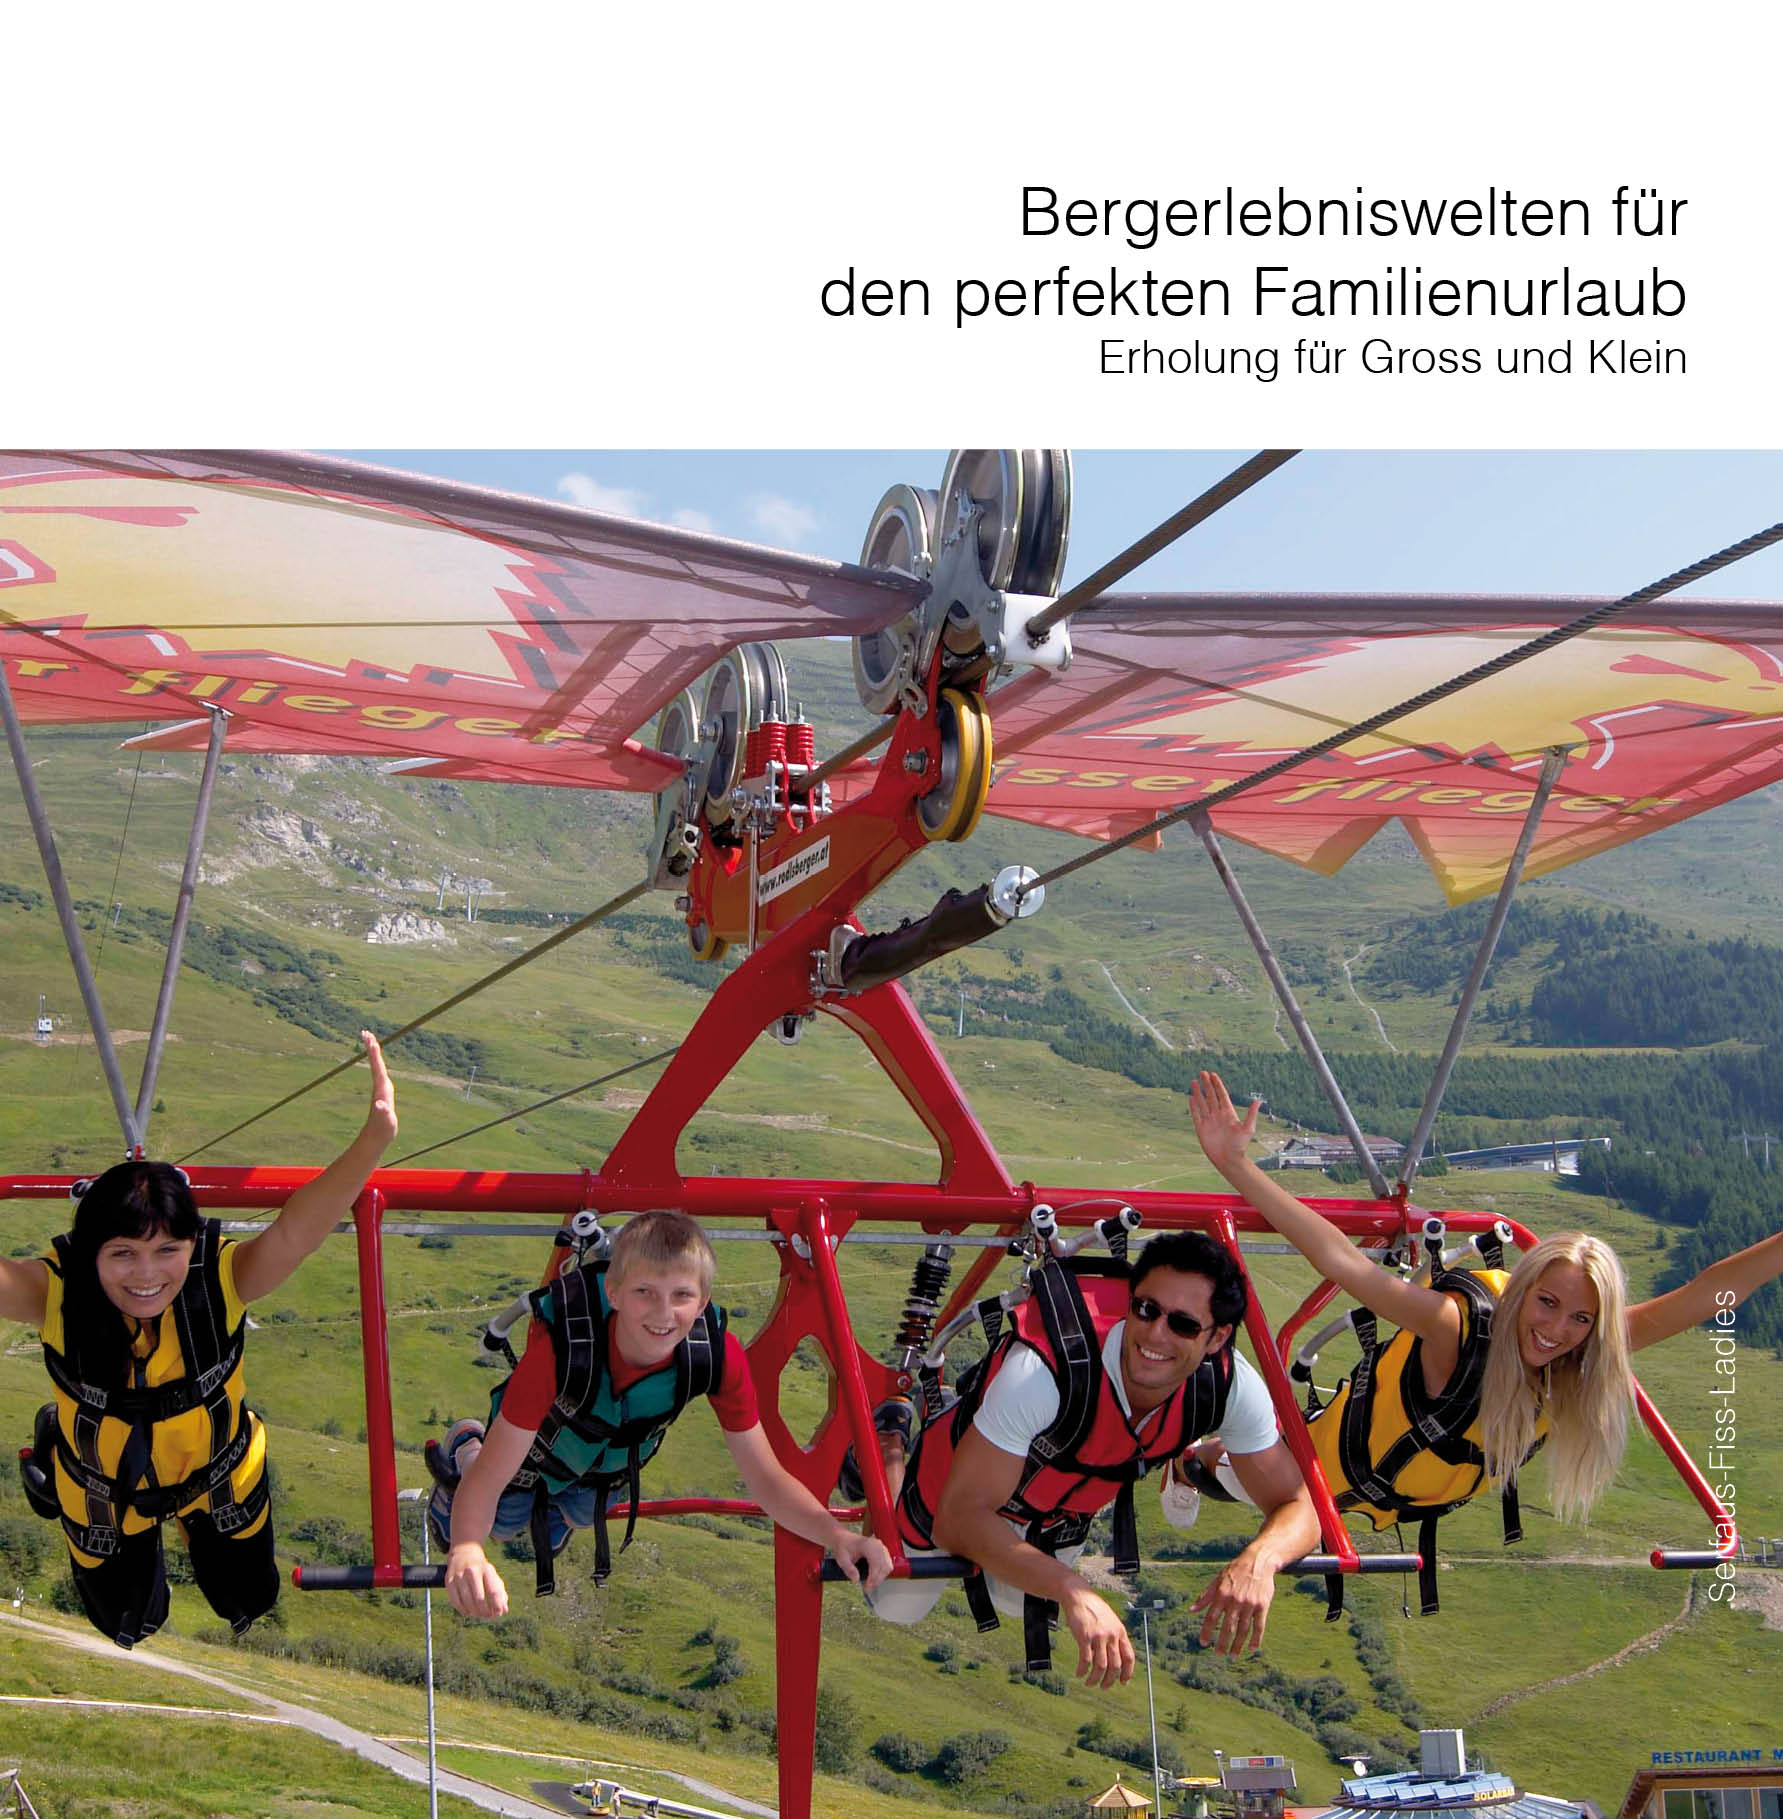 https://www.berge-exclusiv.de/wp-content/uploads/Pocket-Guide-18041641.jpg